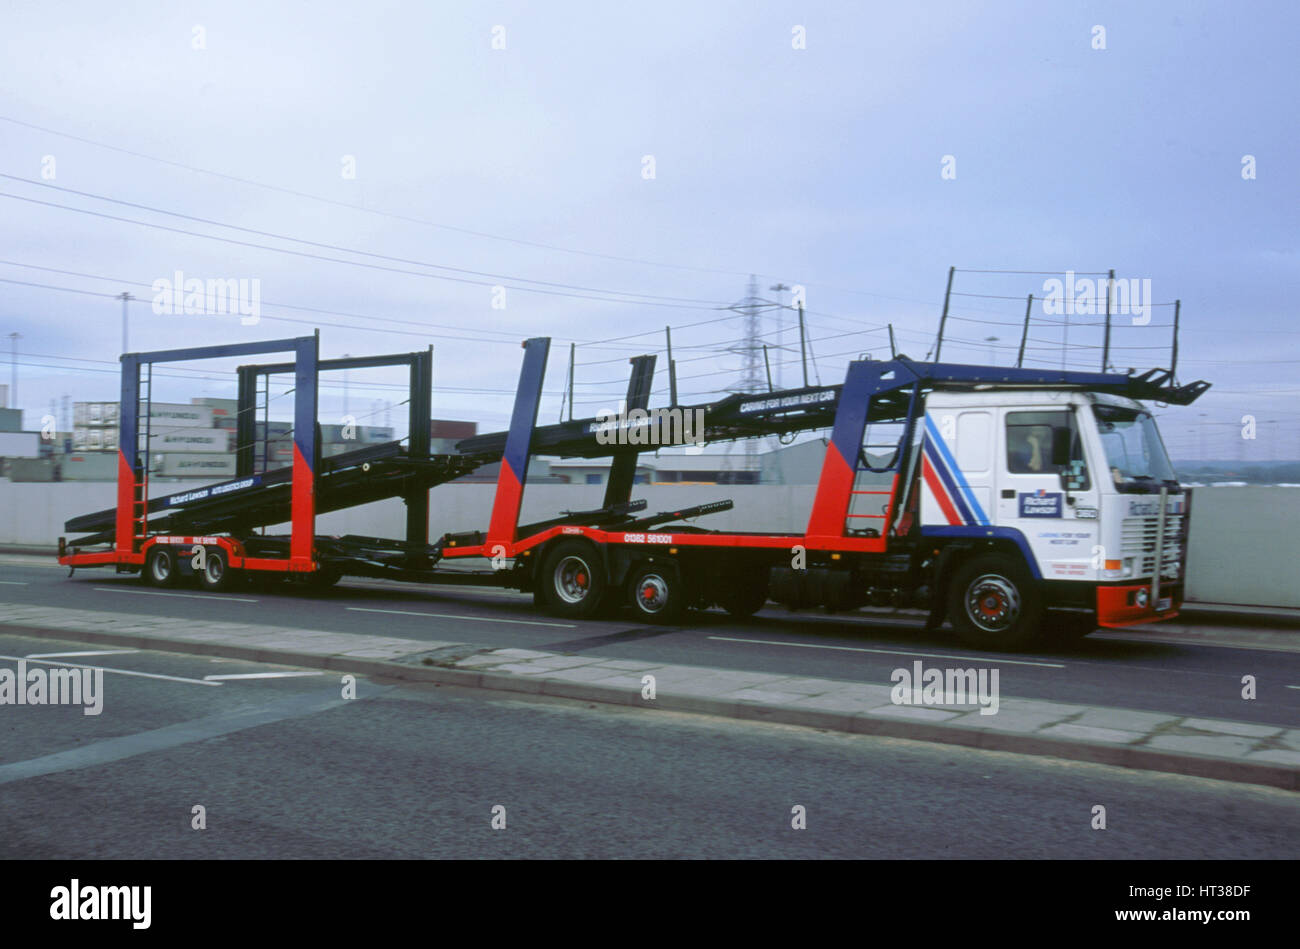 Car Transporter Lorry Stock Photos Amp Car Transporter Lorry Stock Images Alamy